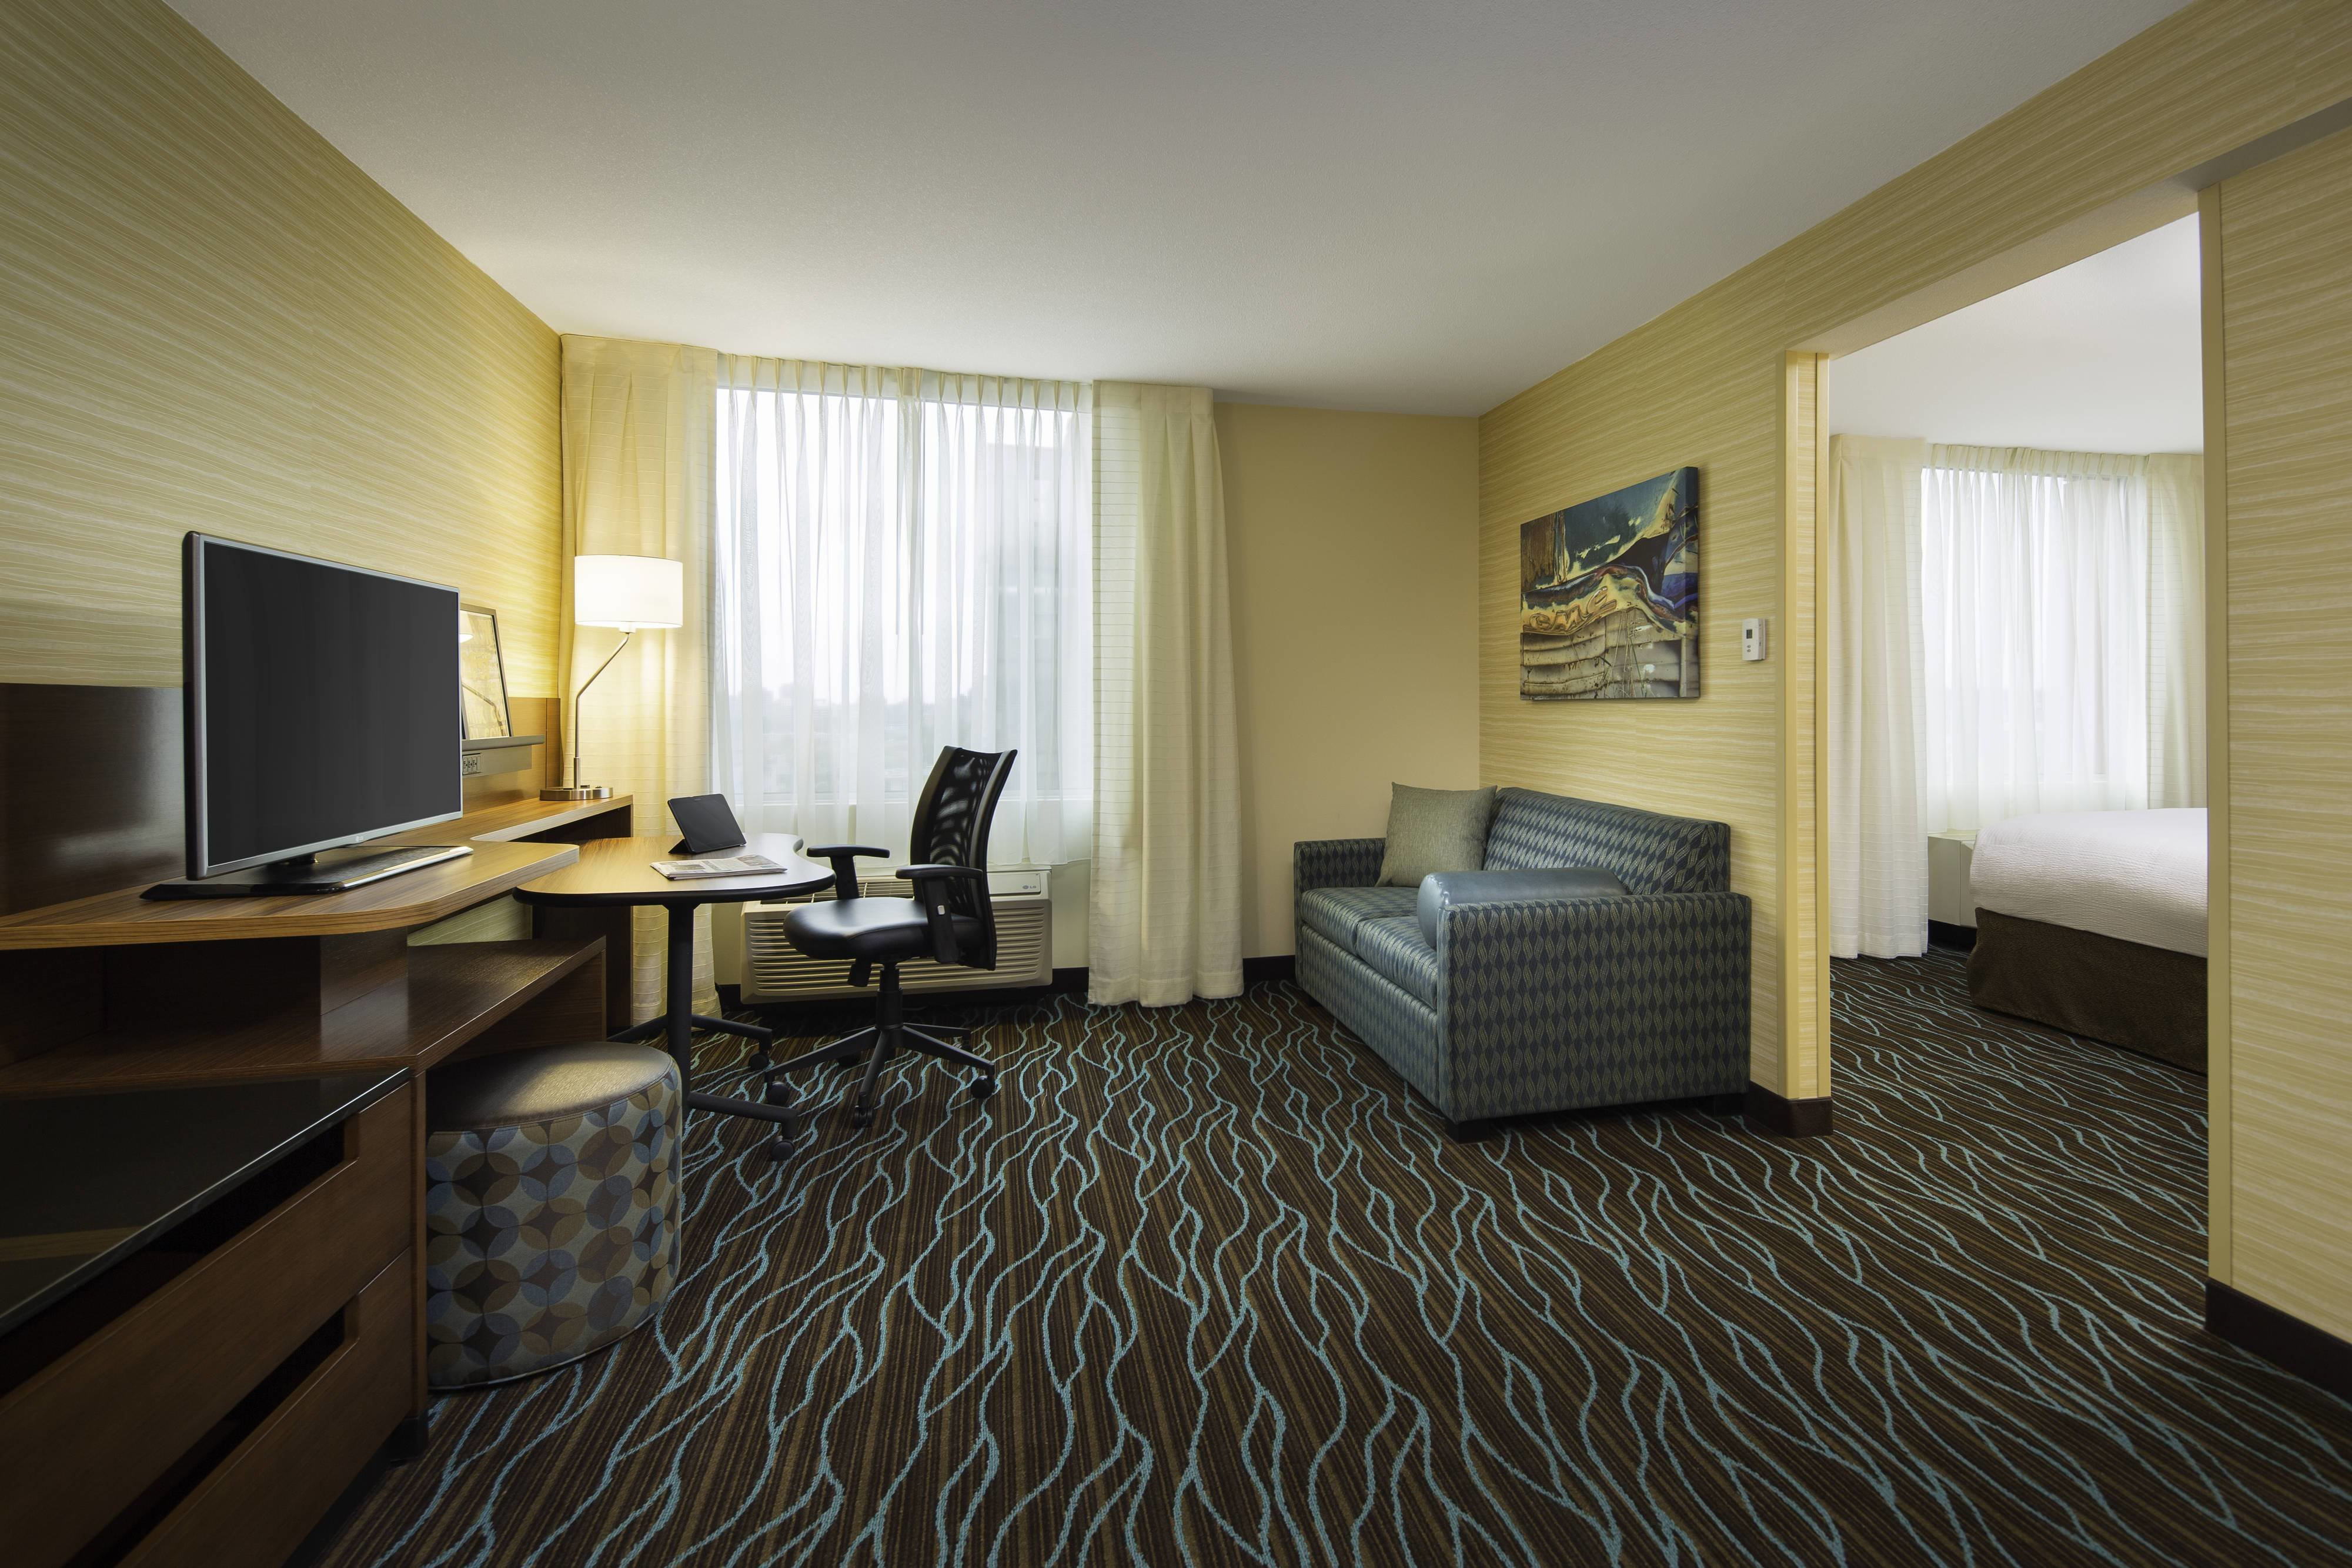 Best Calgary Hotel Suites And Rooms Fairfield Inn Suites With Pictures